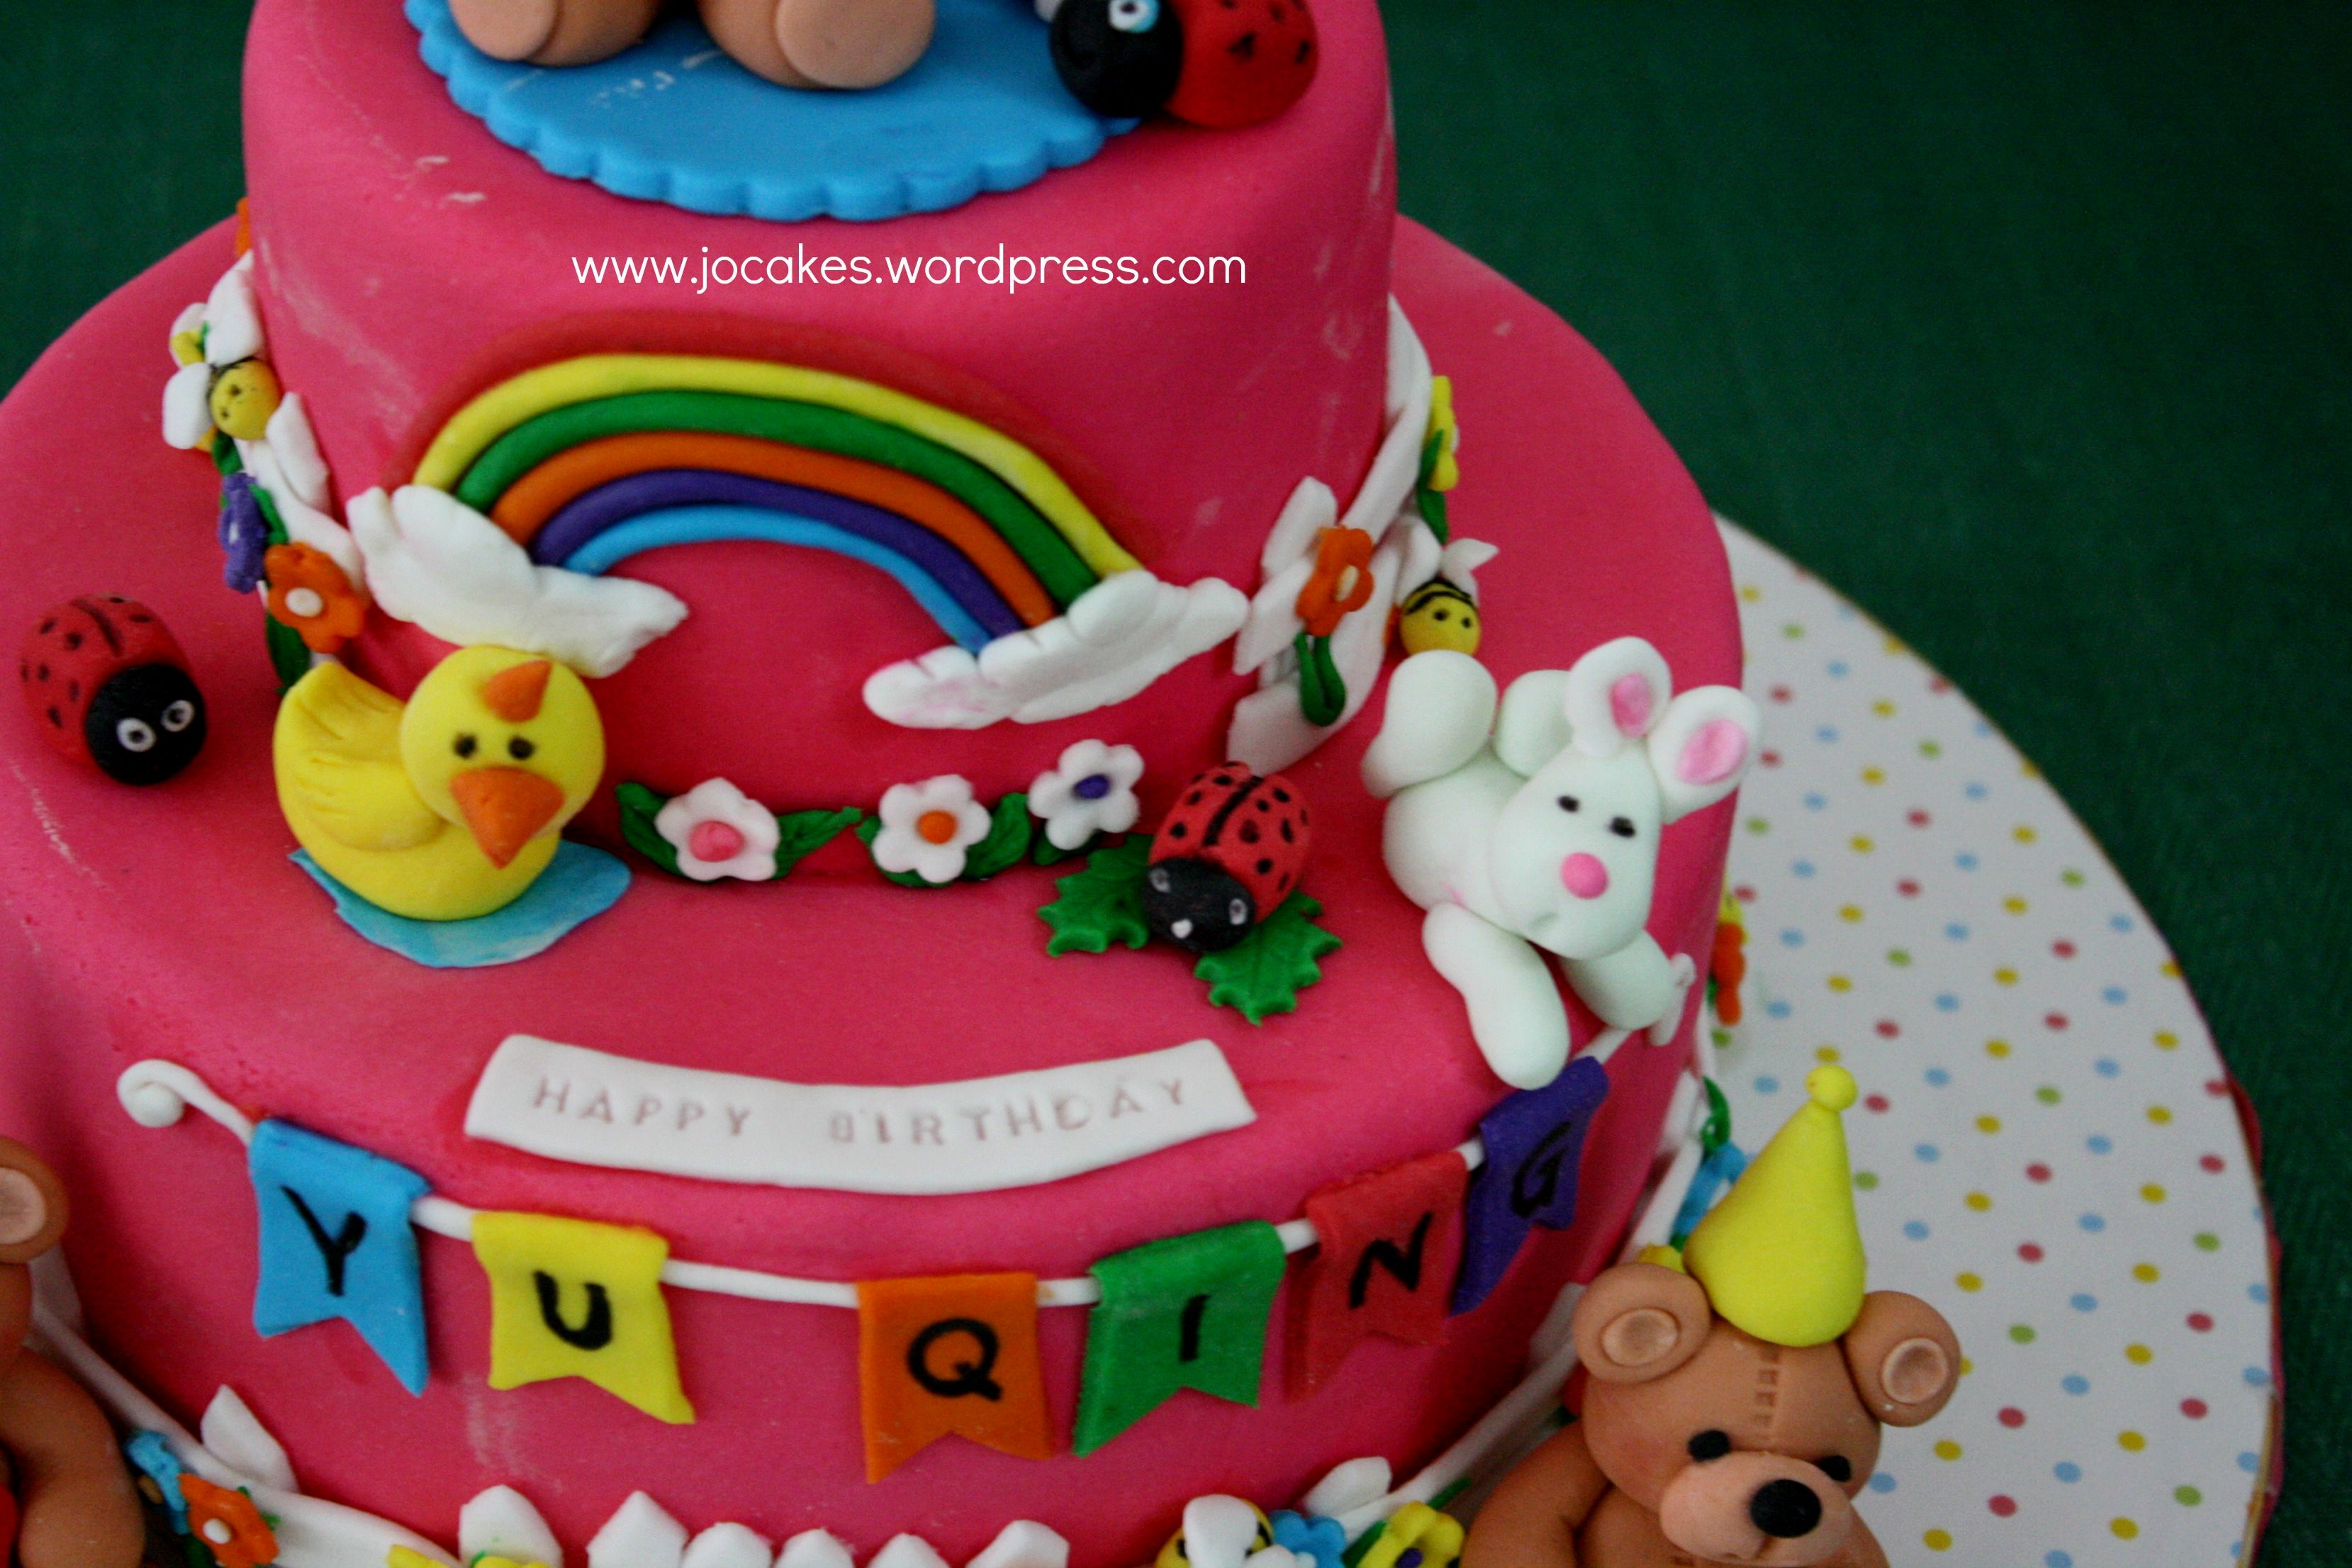 97 Image Result For Cakes For 2 Year Old Girl Birthday Party Ideas